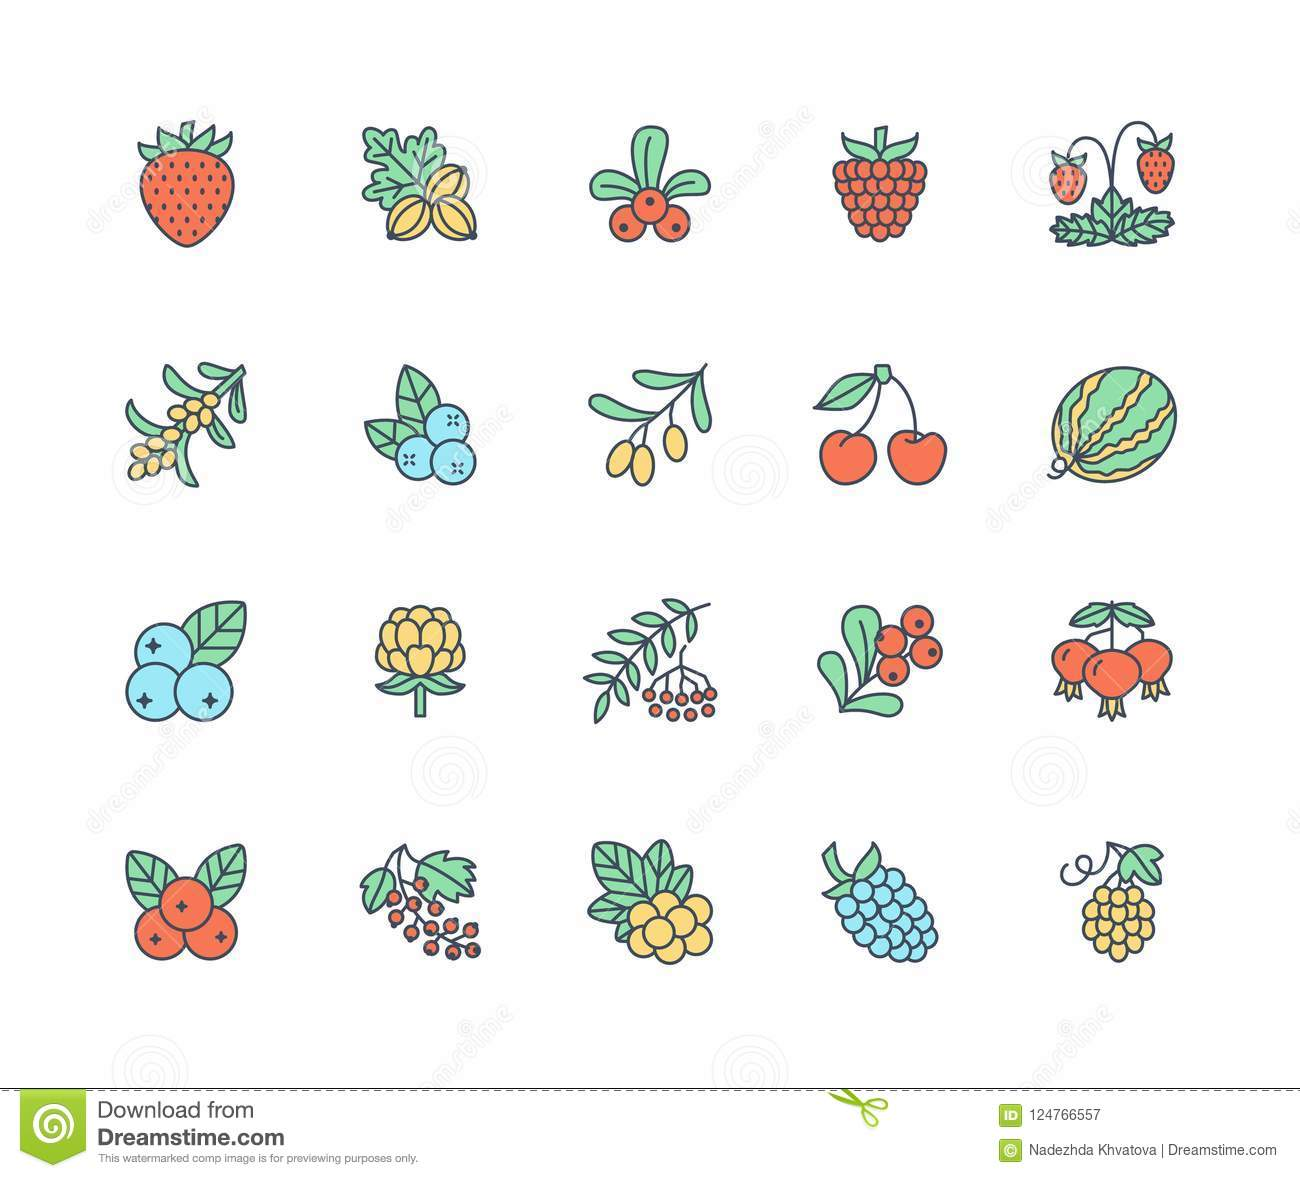 Forest berries colored flat line icons - blueberry, cranberry, raspberry, strawberry, cherry, rowan berry, blackberry